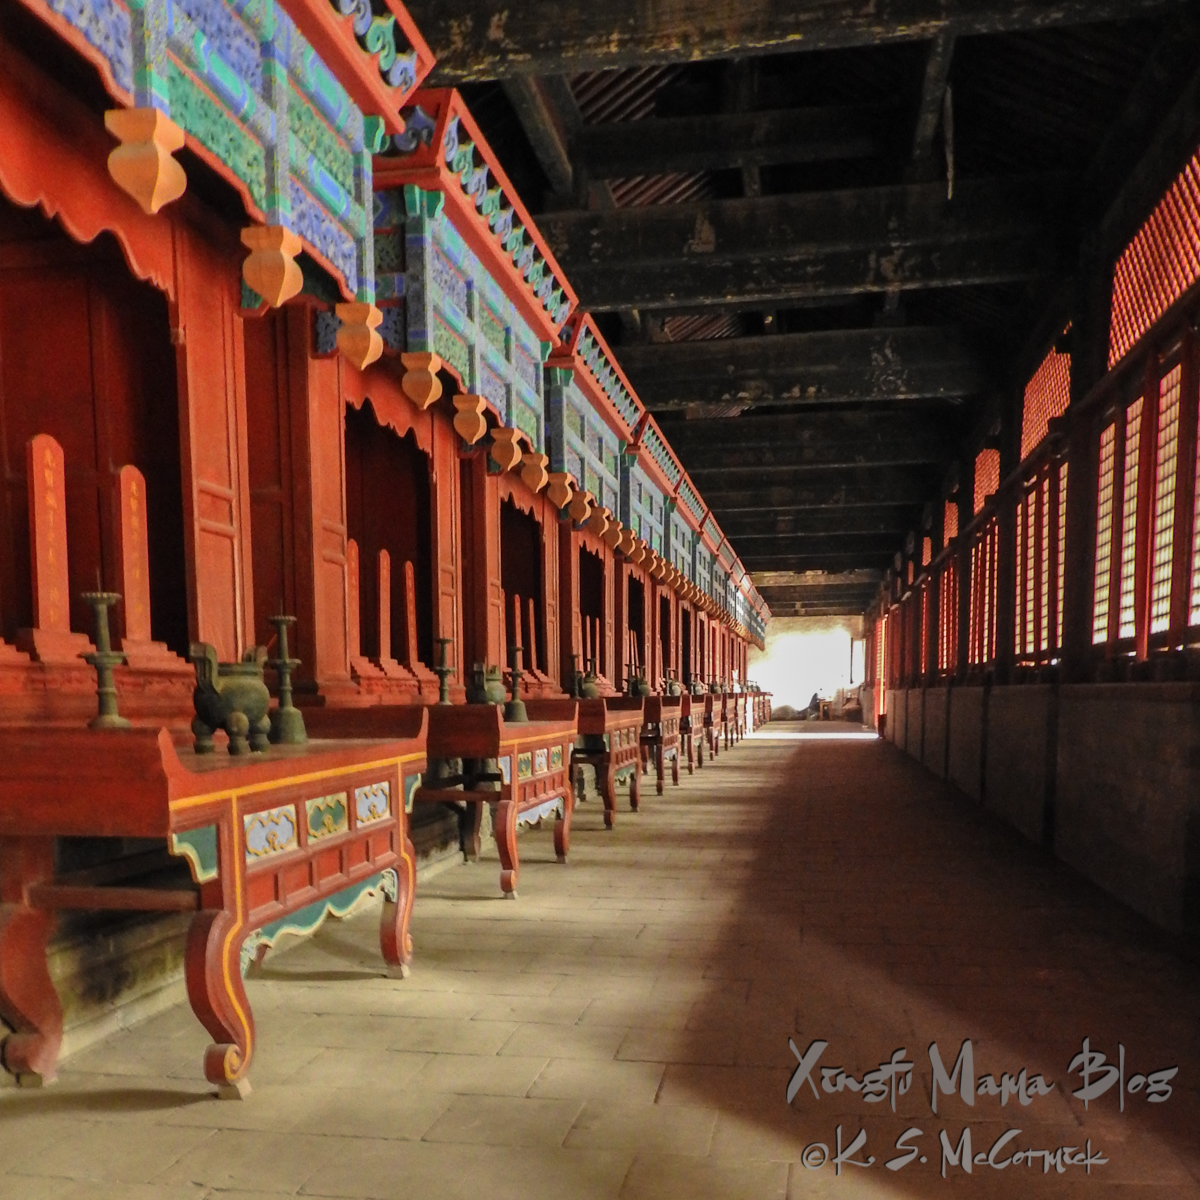 Long row of altars with Confucius's teachings at Kong Miao (Confucius Temple) in Qufu, Shandong Province, China.